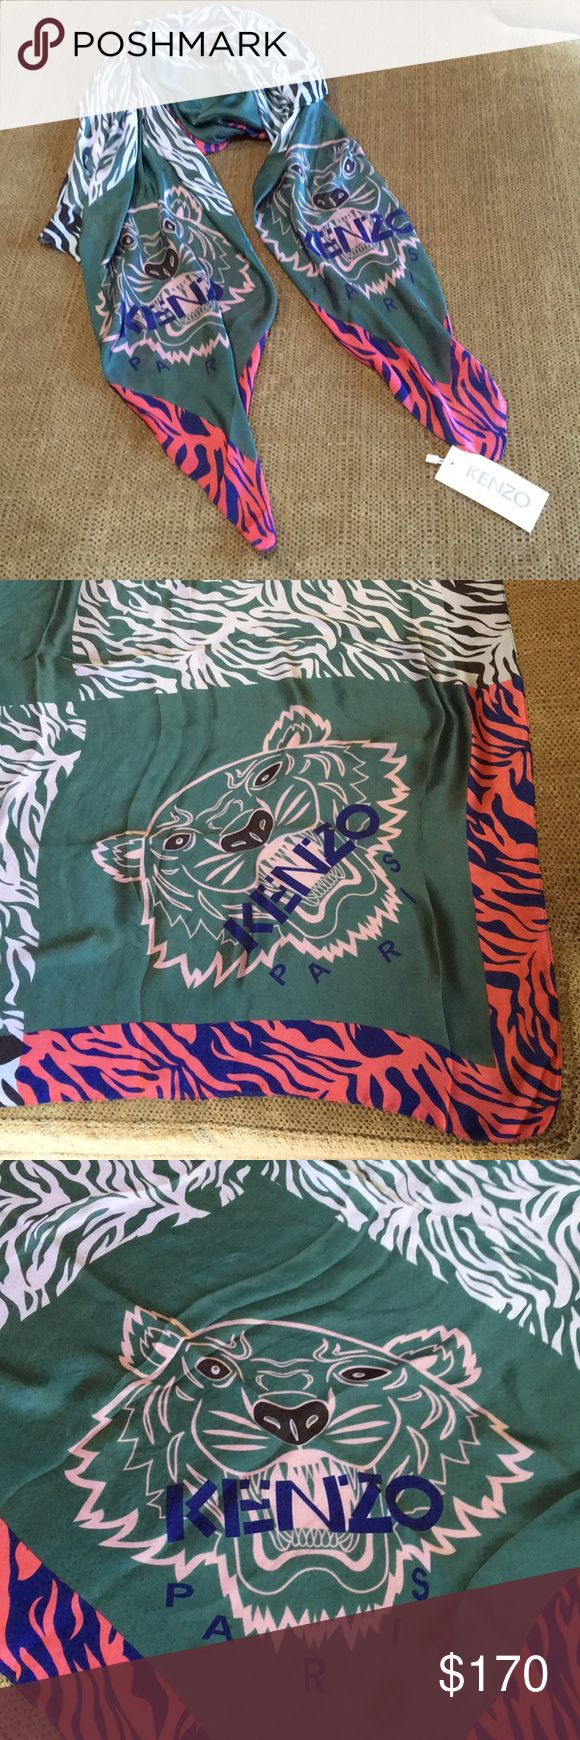 """KENZO Large Silk Tiger Scarf New with Tags  Kenzo Paris Large Silk Tiger Scarf. Multicolor Geo Print. Approx. measurements: w: 38"""" by l: 90"""" inches   New with Tags. All questions and inquiries welcome. Kenzo Accessories Scarves & Wraps"""